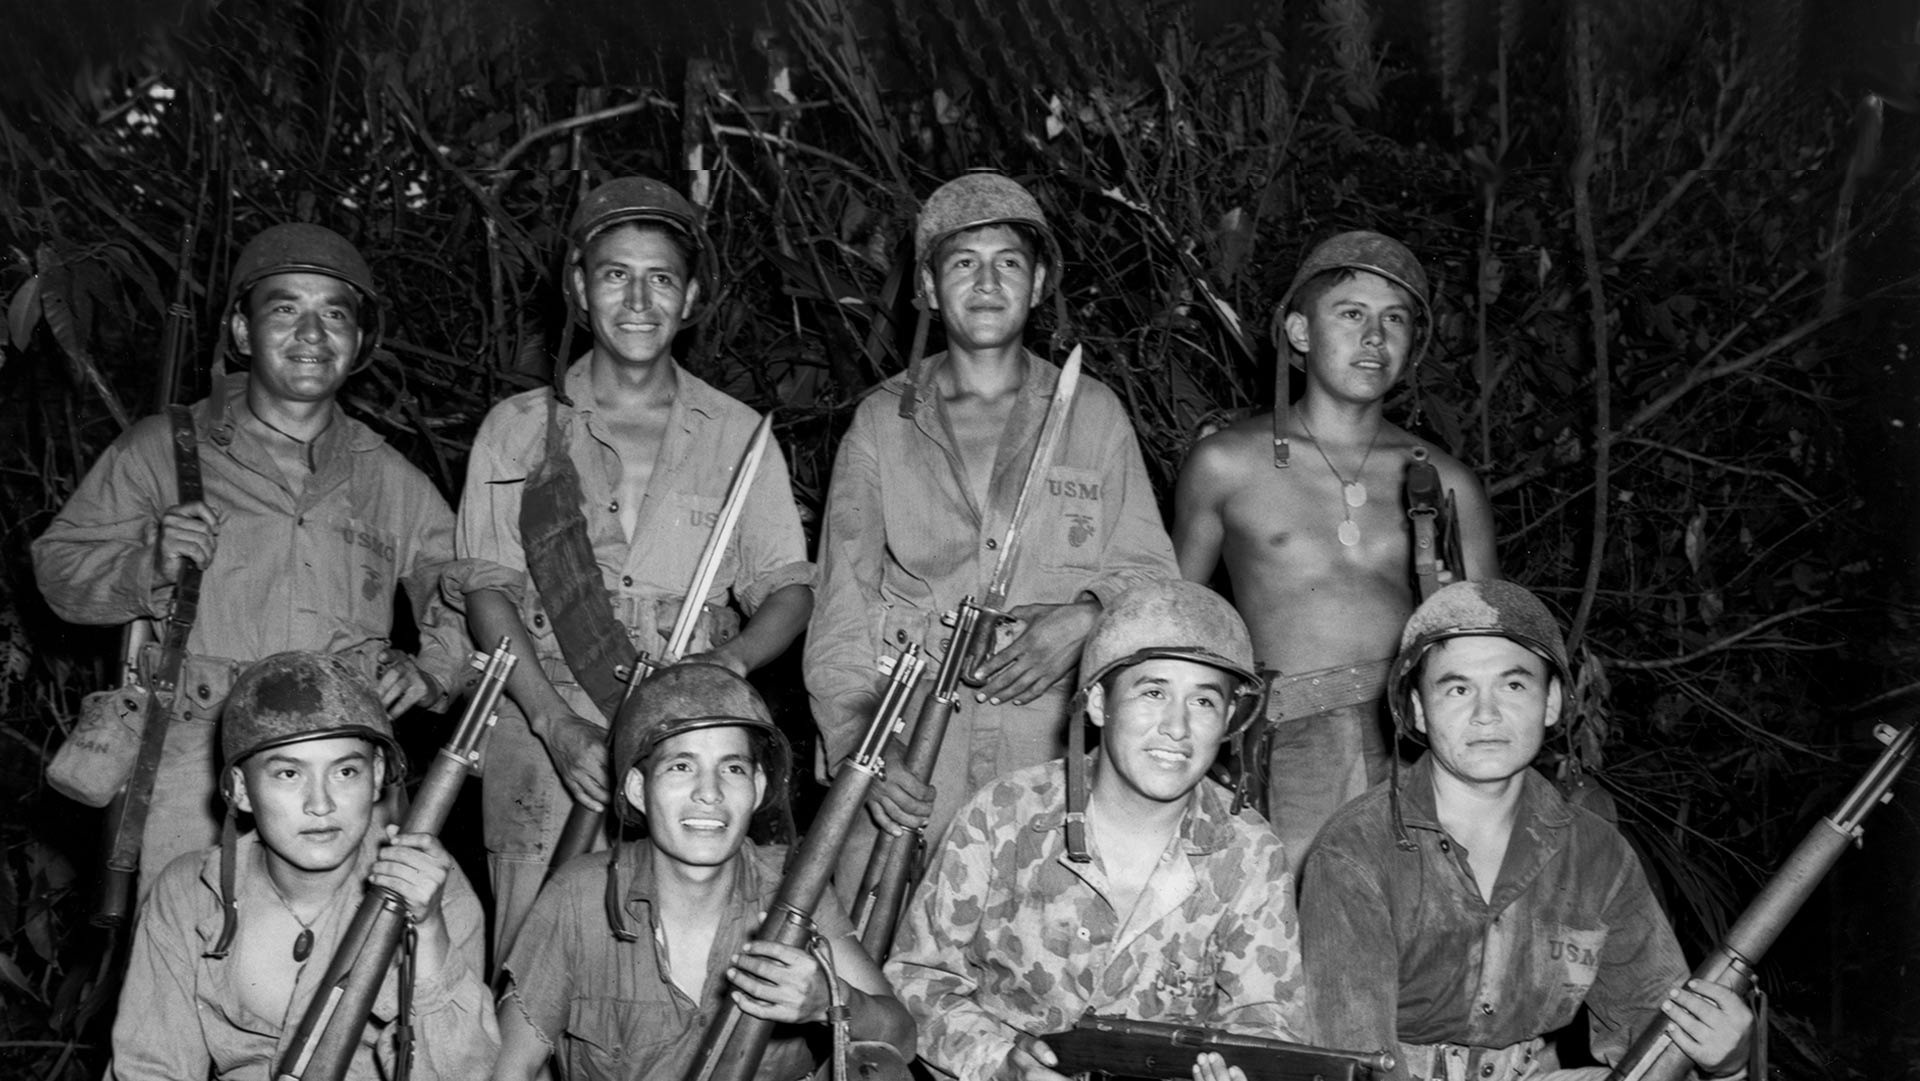 Navajo Marine code talkers on duty at Bougainville, Solomon Islands, c. December 1943. Front row, left to right: Privates Earl Johnny, Kee Etsicitty, John V. Goodluck, and Private First Class David Jordan. Back row: Privates Jack C. Morgan, George H. Kirk, Tom H. Jones, and Corporal Henry Bake, Jr.